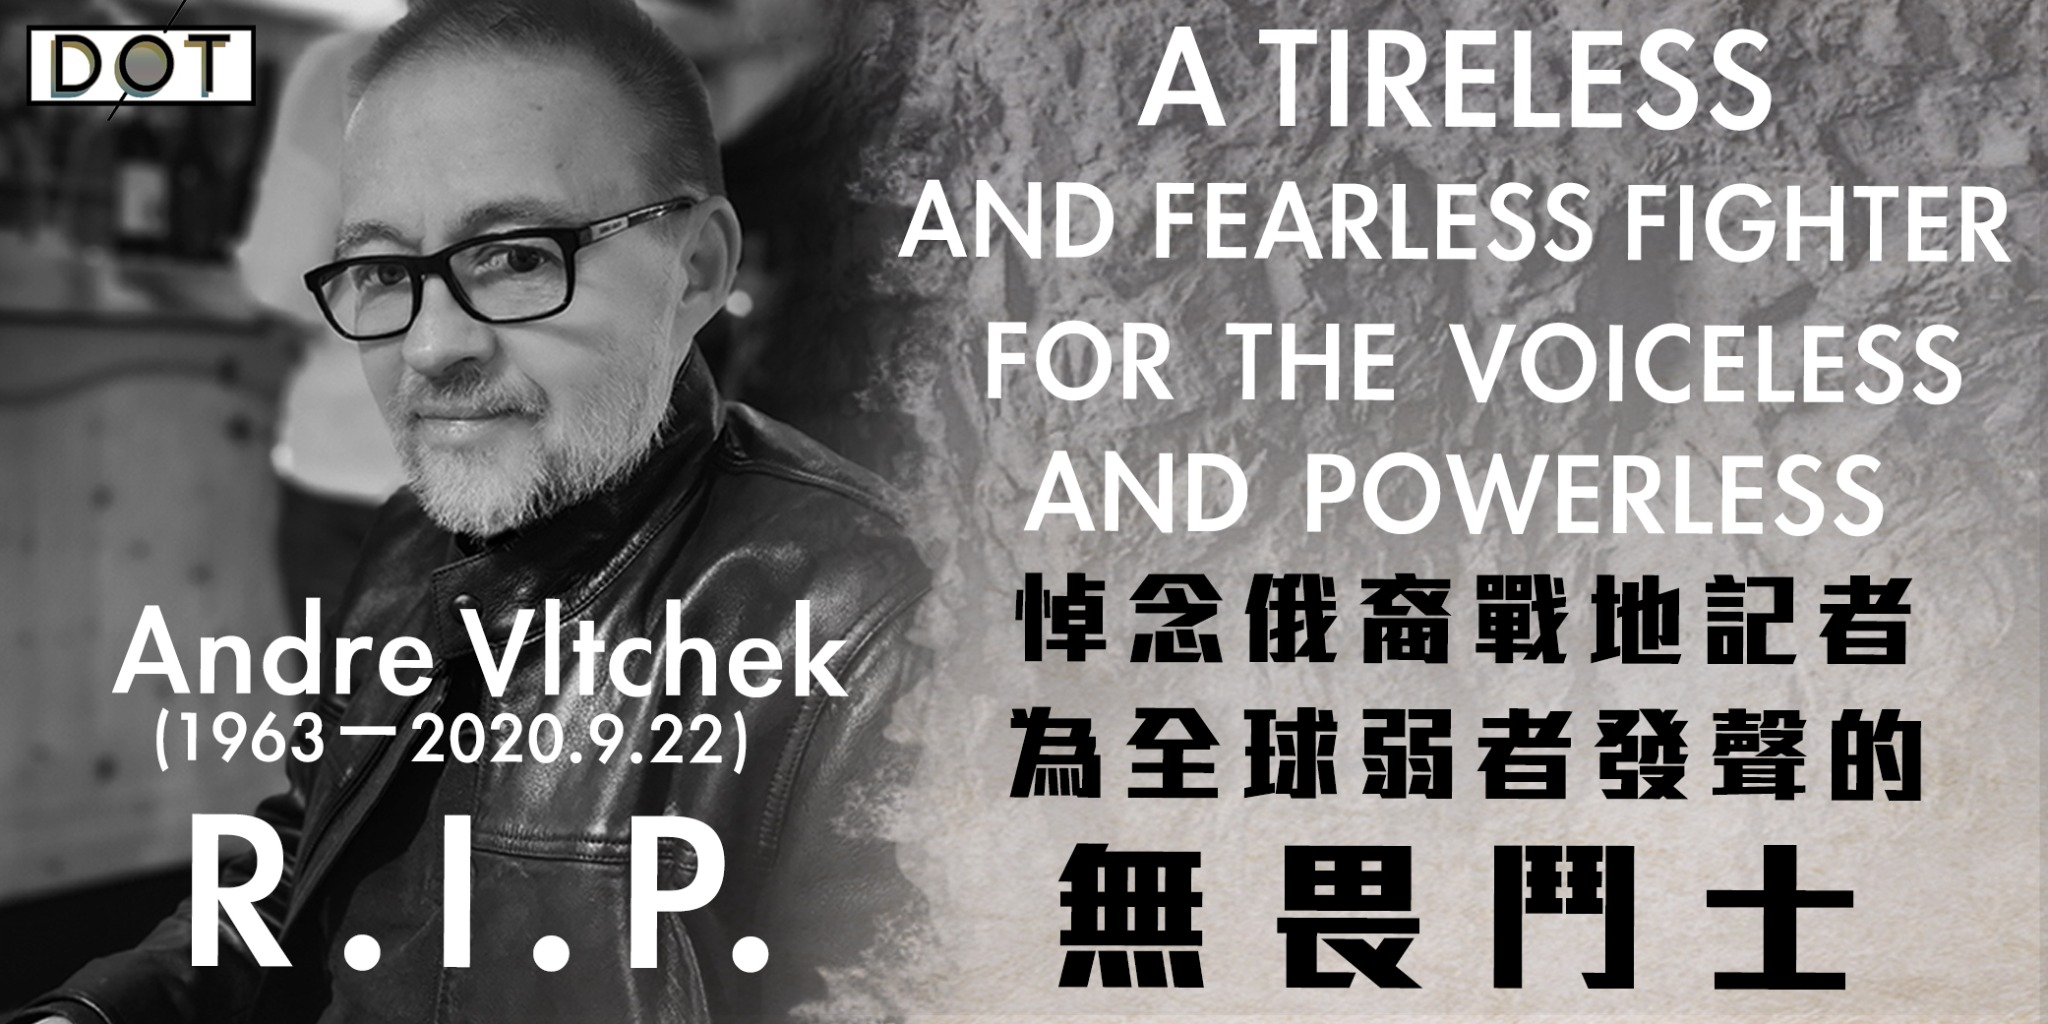 RIP, Andre Vltchek: A tireless and fearless fighter for the voiceless and powerless